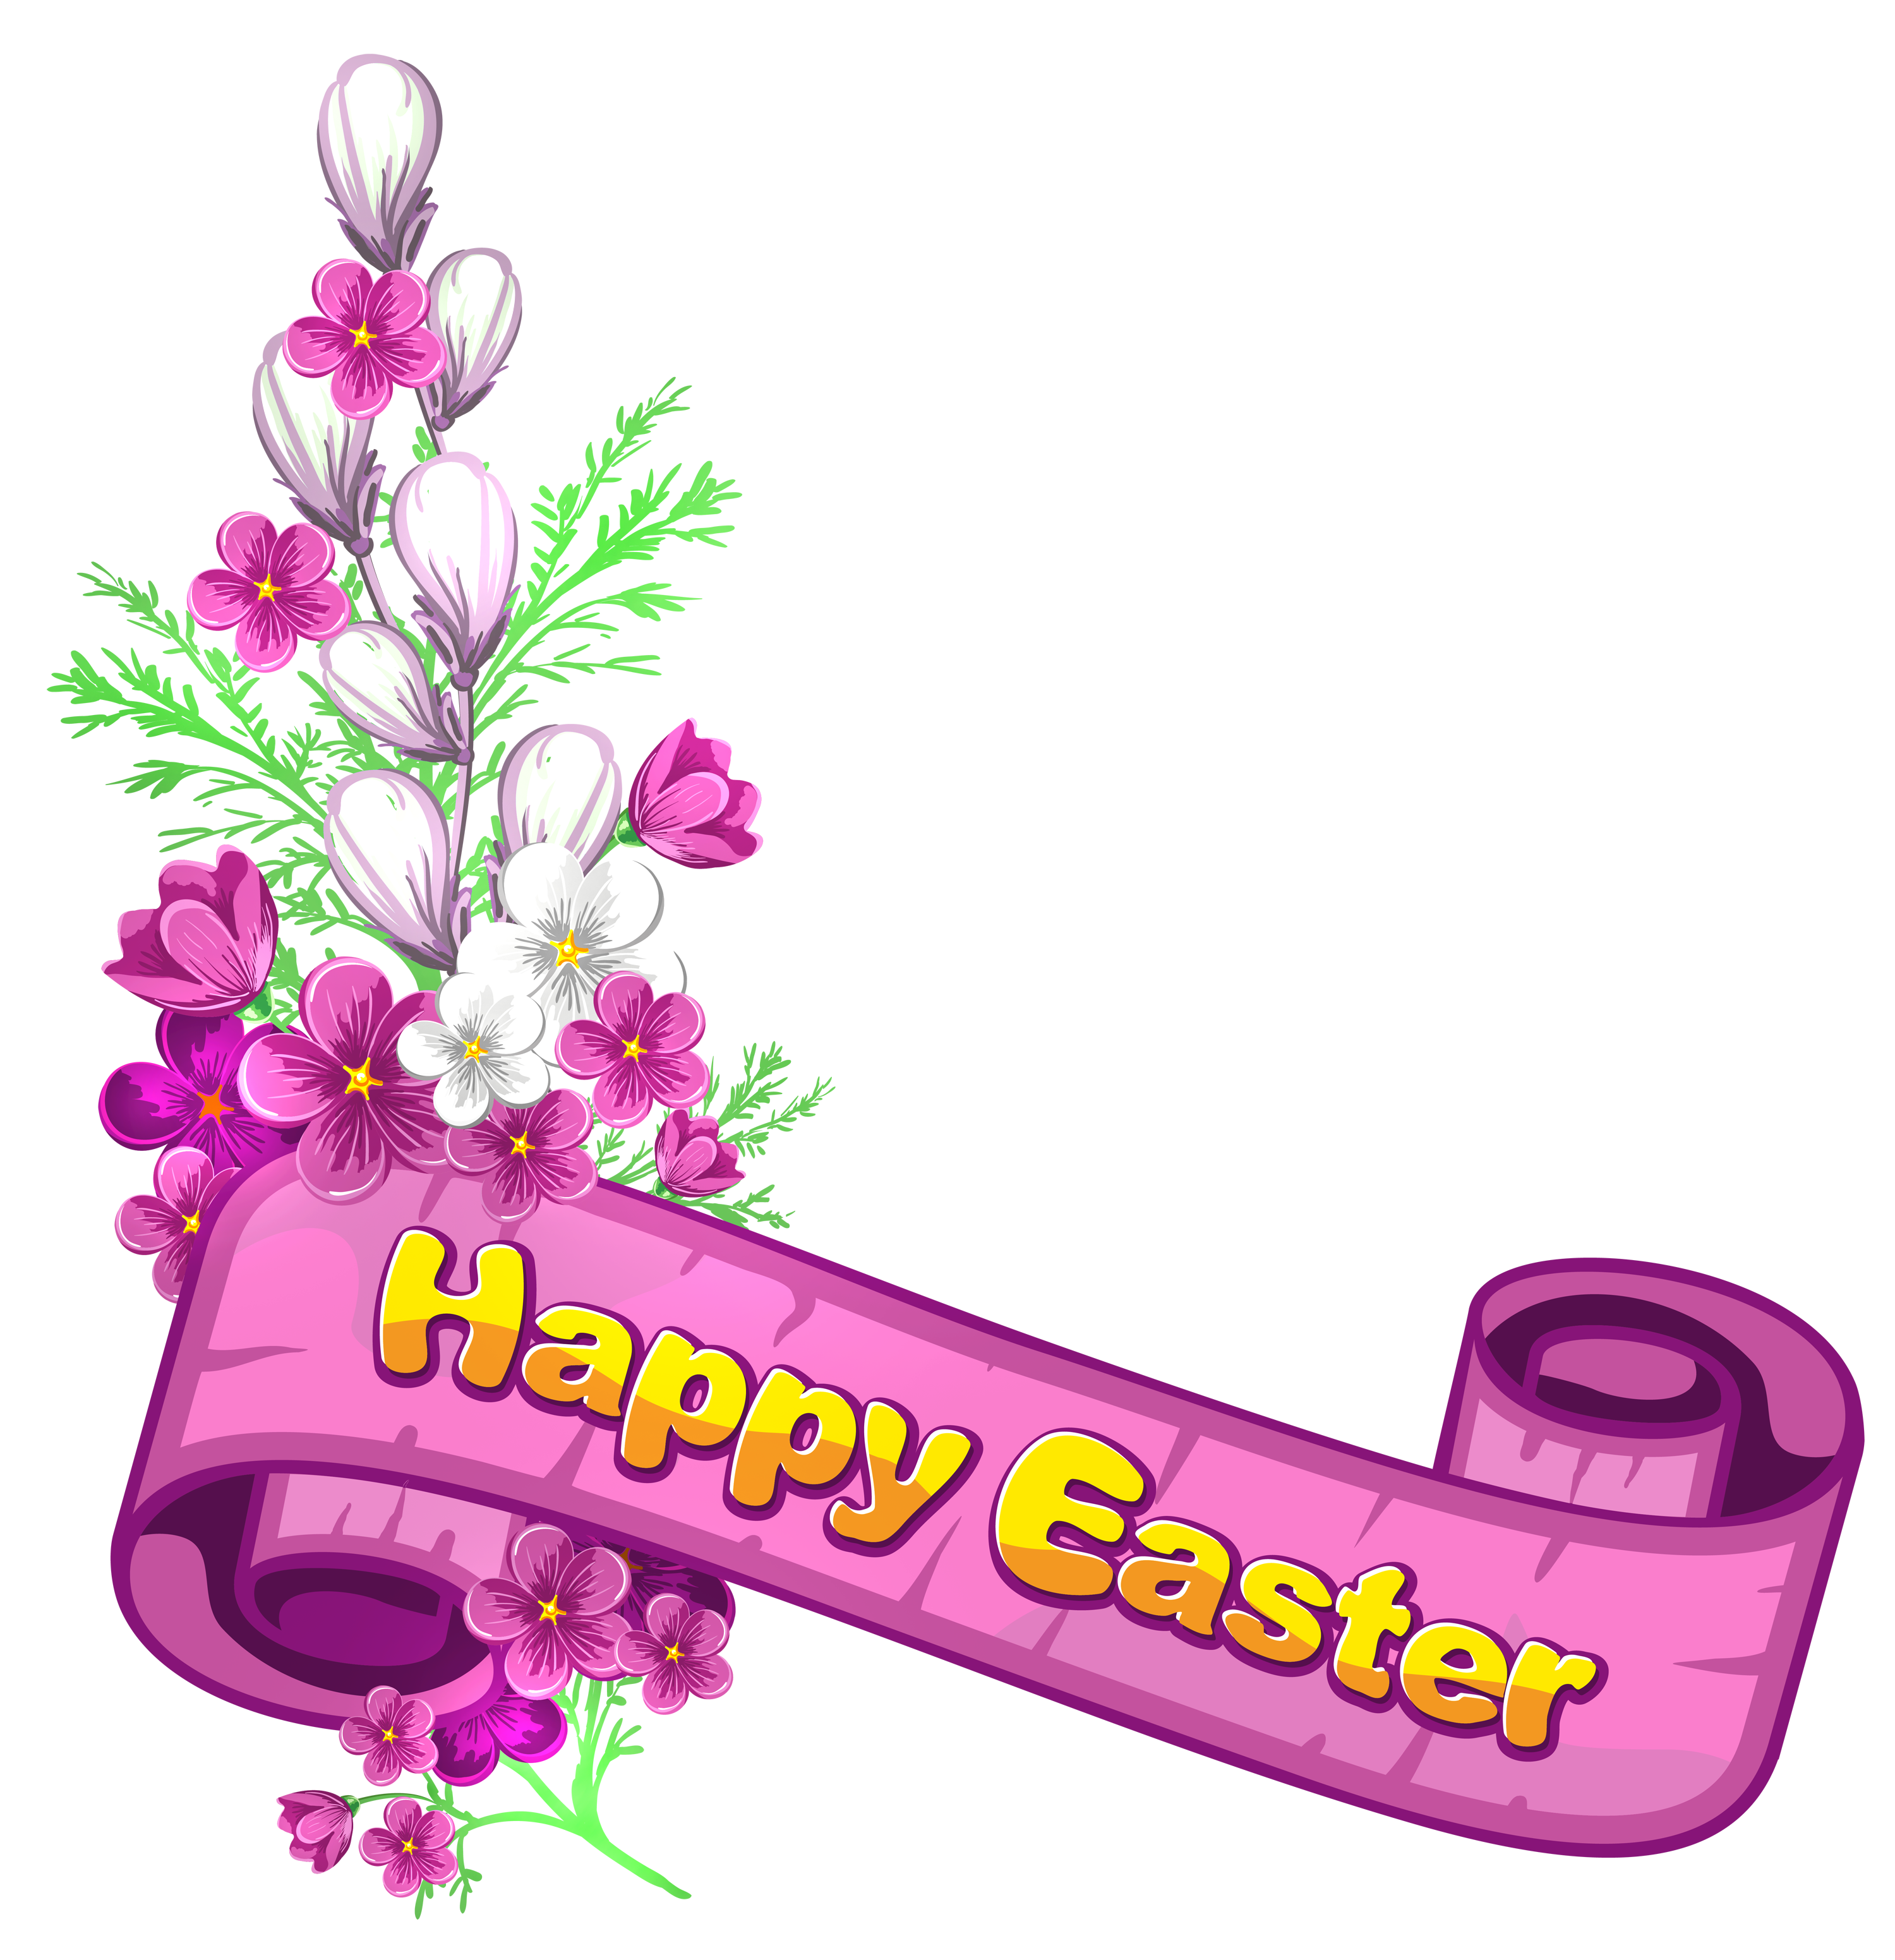 Easter flower clipart free. Flowers high definition images